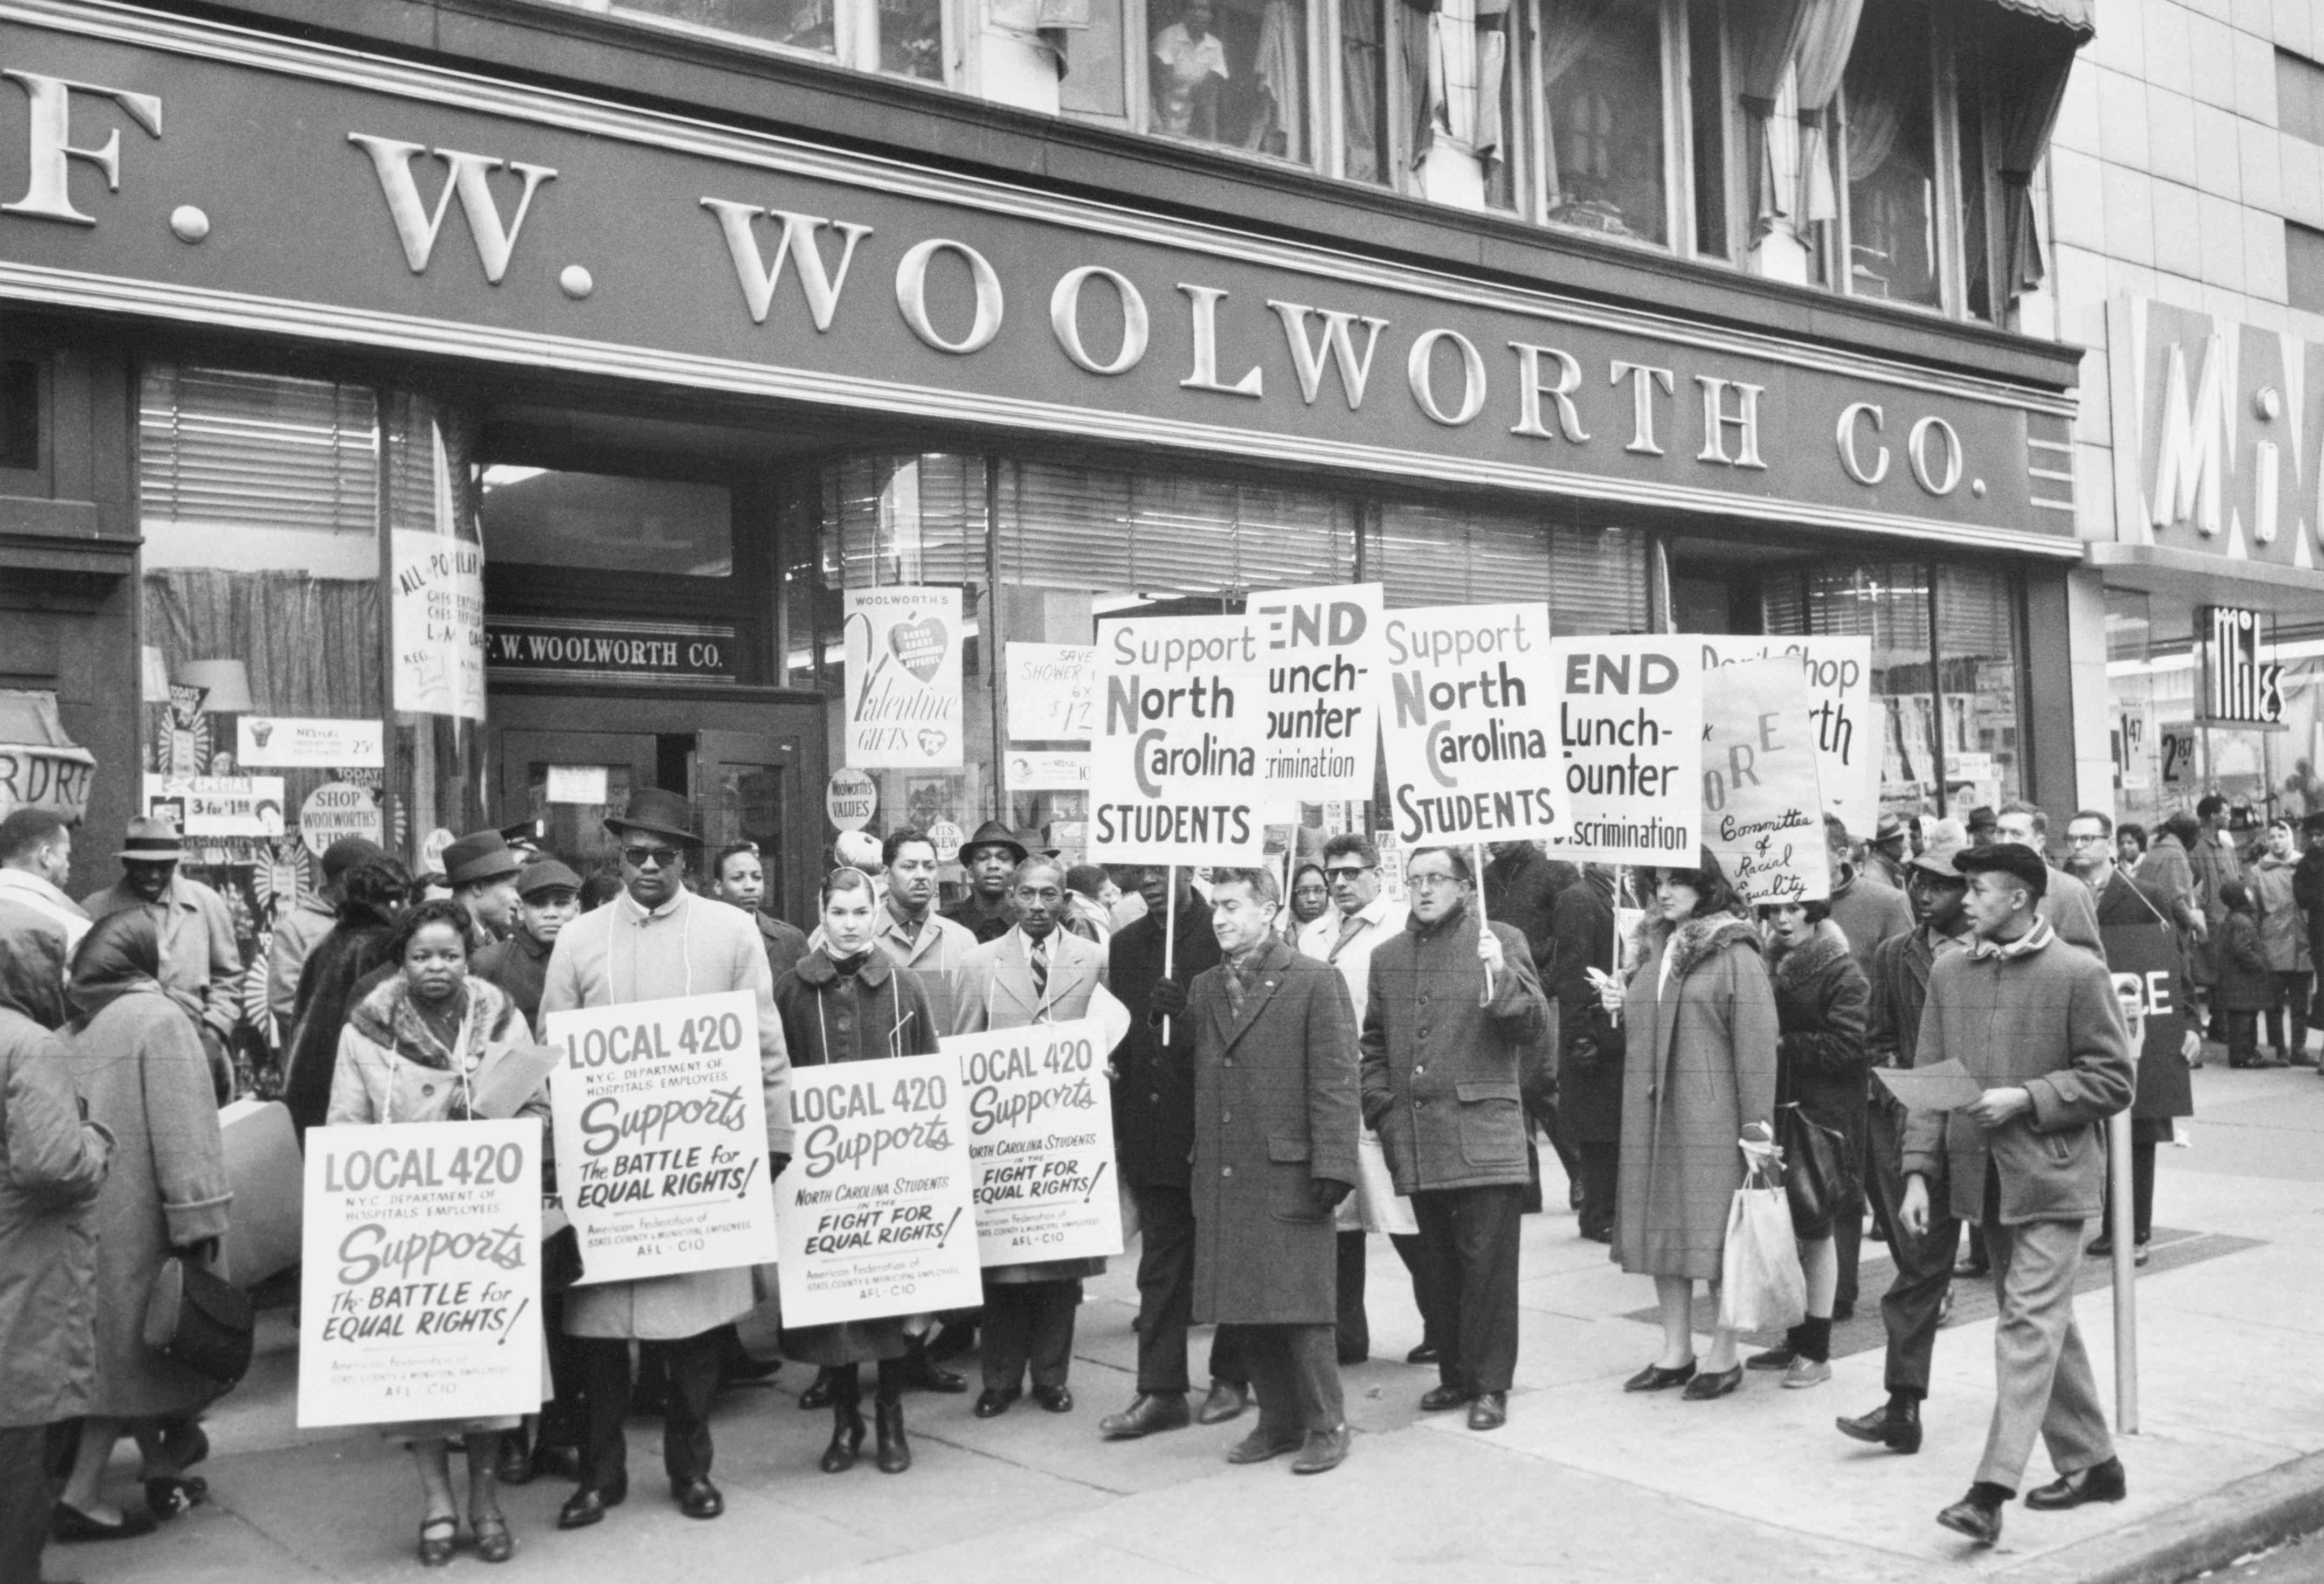 CORE Demonstrators Outside Harlem Woolworth Store